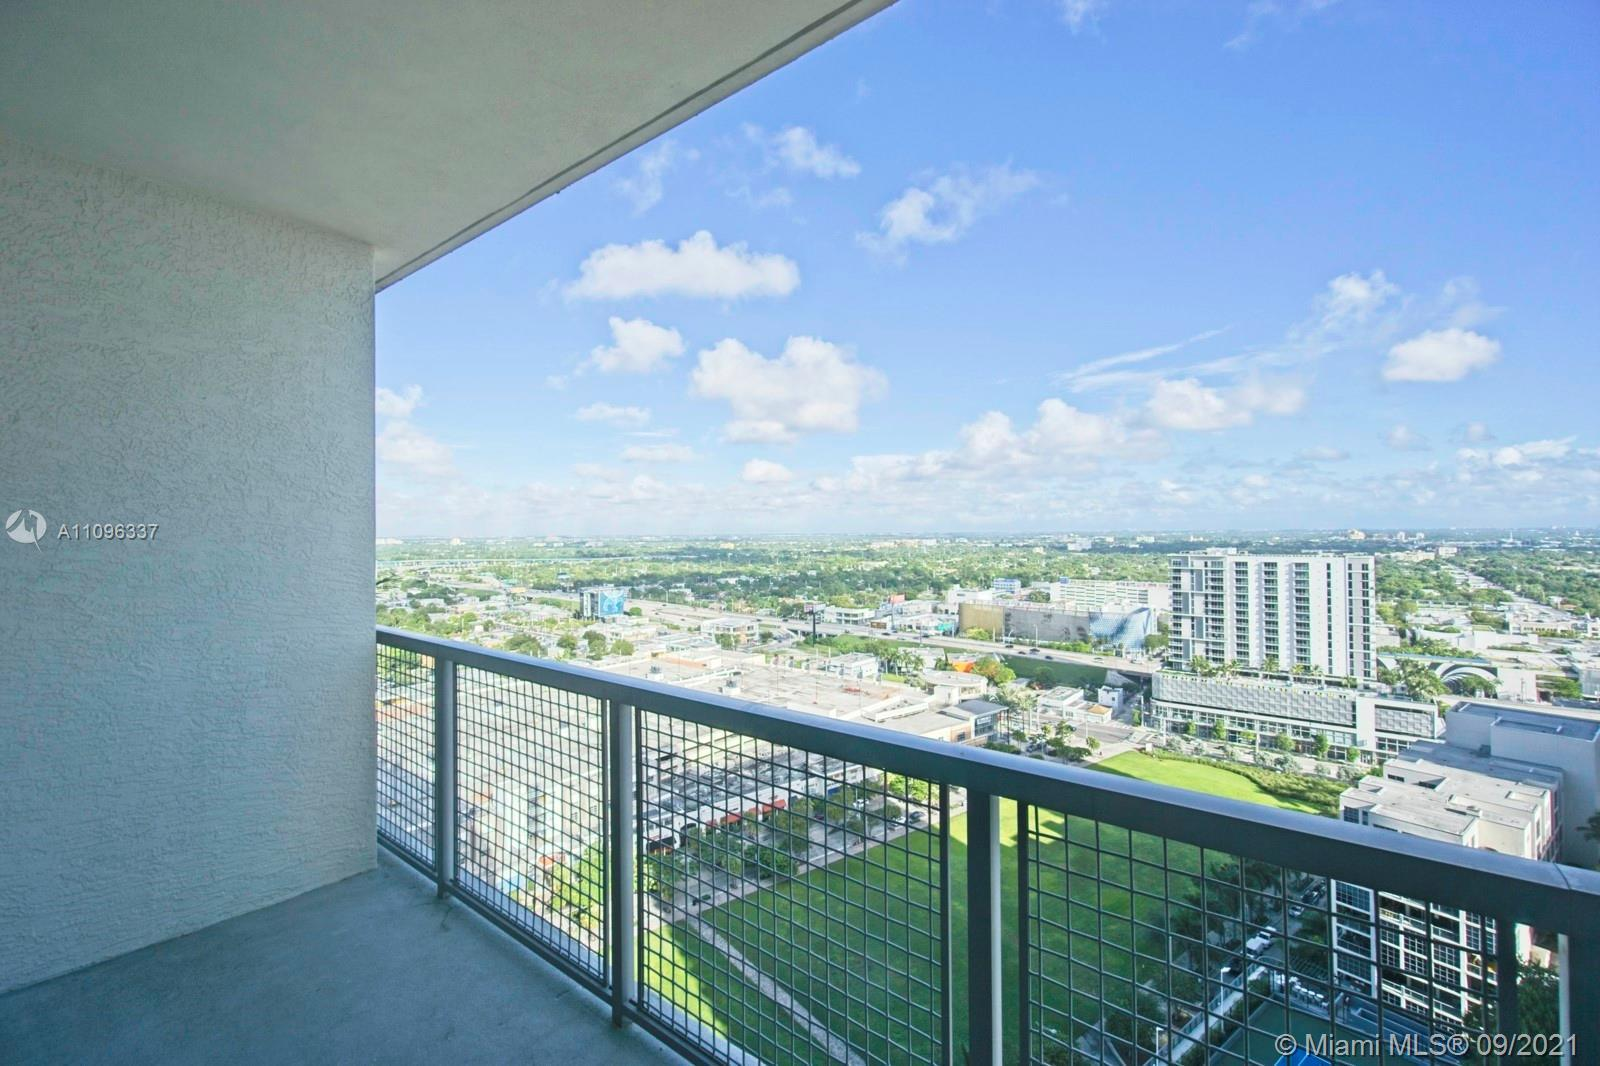 Great convertible one bedroom unit in the heart of midtown! Walkable lifestyle with great restaurant